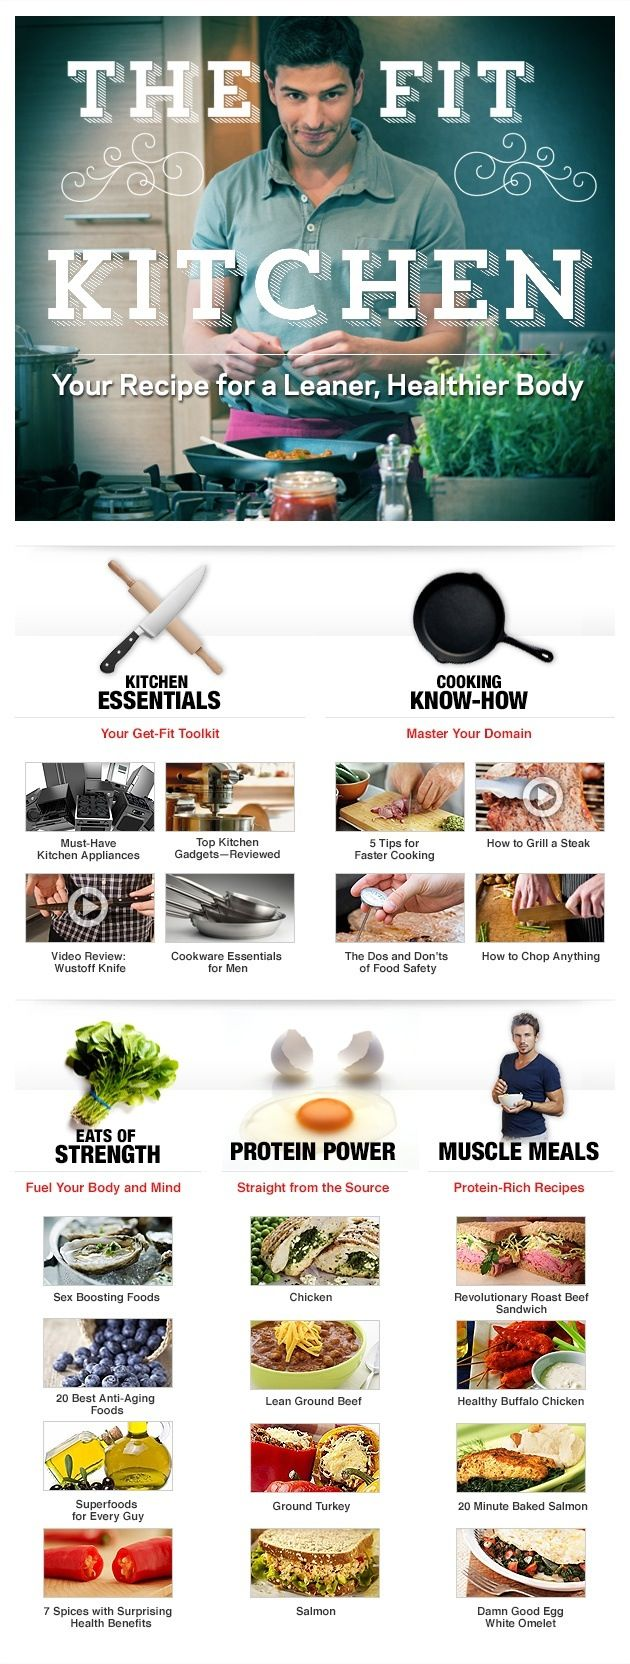 Healthy kitchen essentials Come get your fitness on at